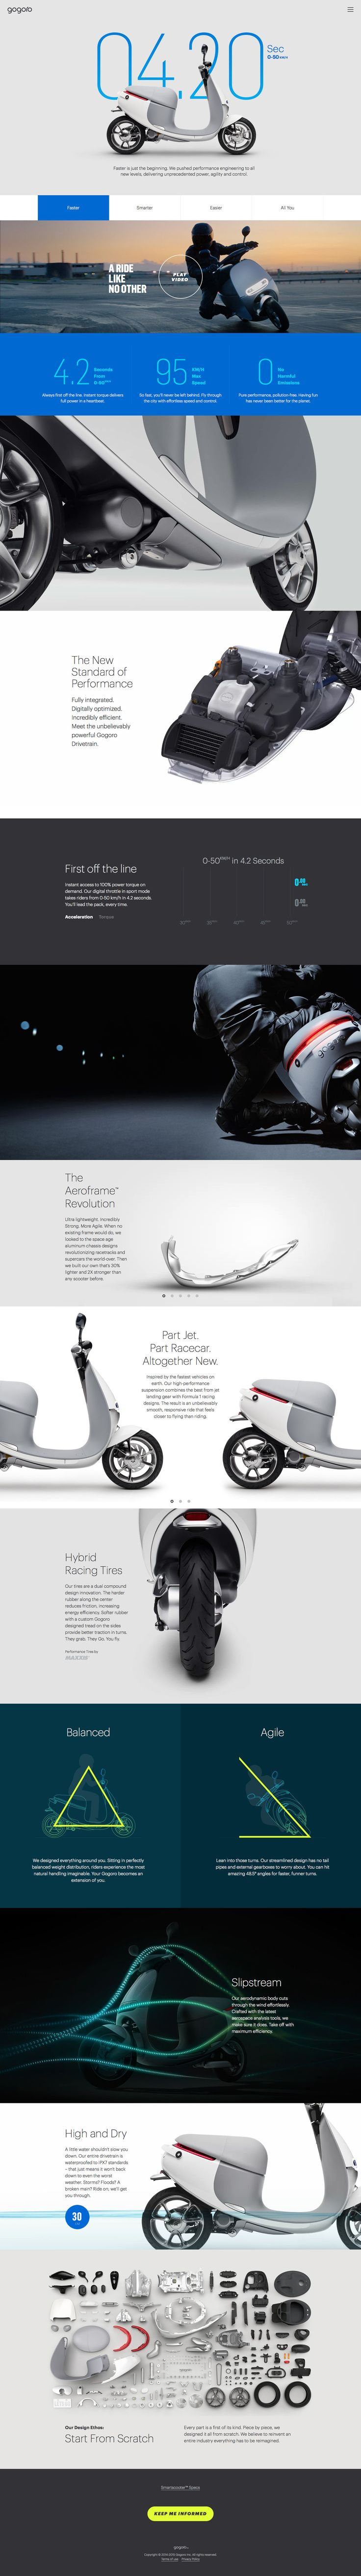 I really like the side to side imagery, the pacing is also really nice. http://www.gogoro.com/